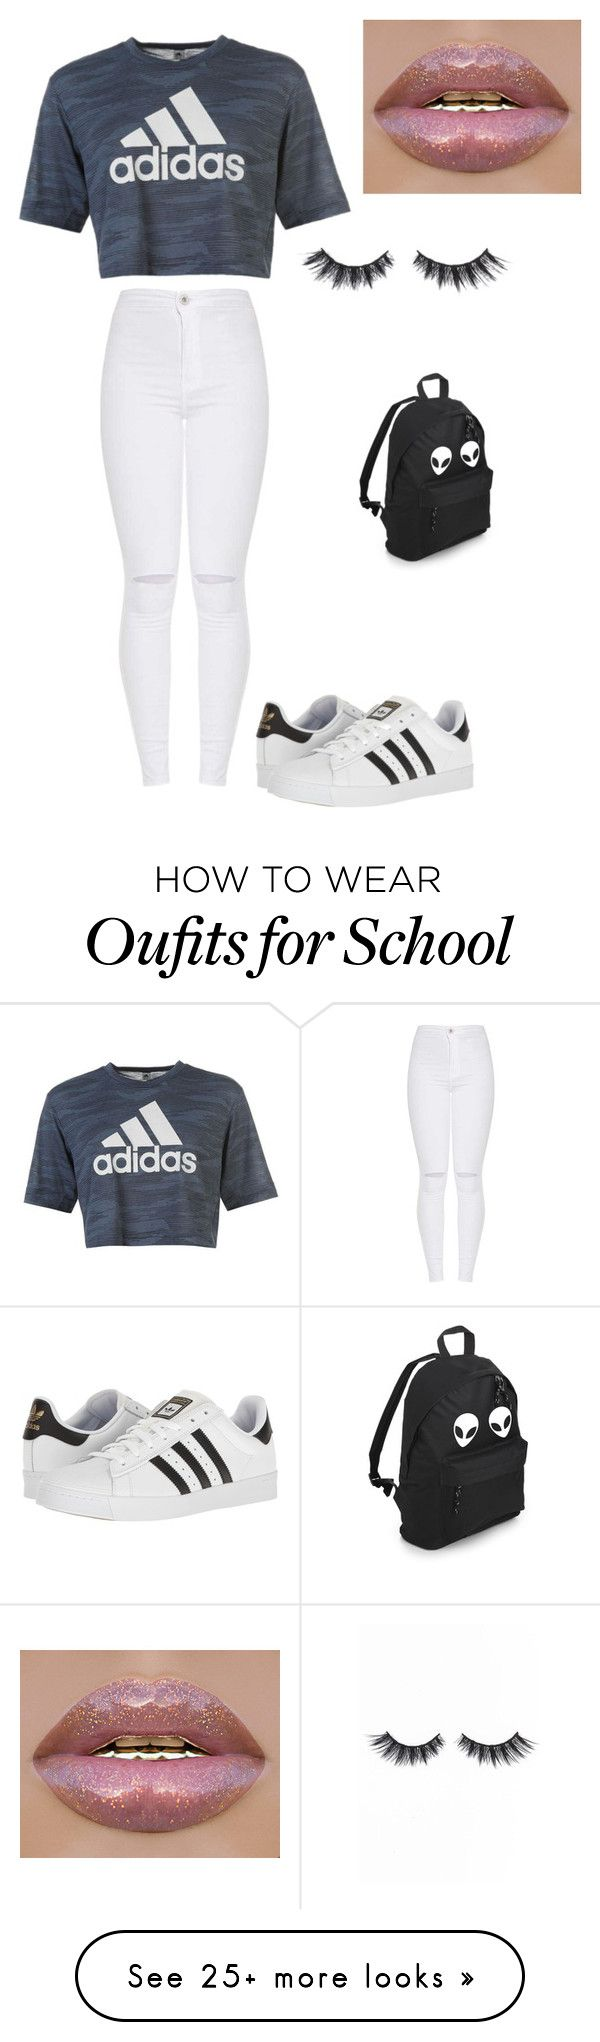 """Adida outfit"" by zowie-sandoval on Polyvore featuring adidas and Violet Voss"